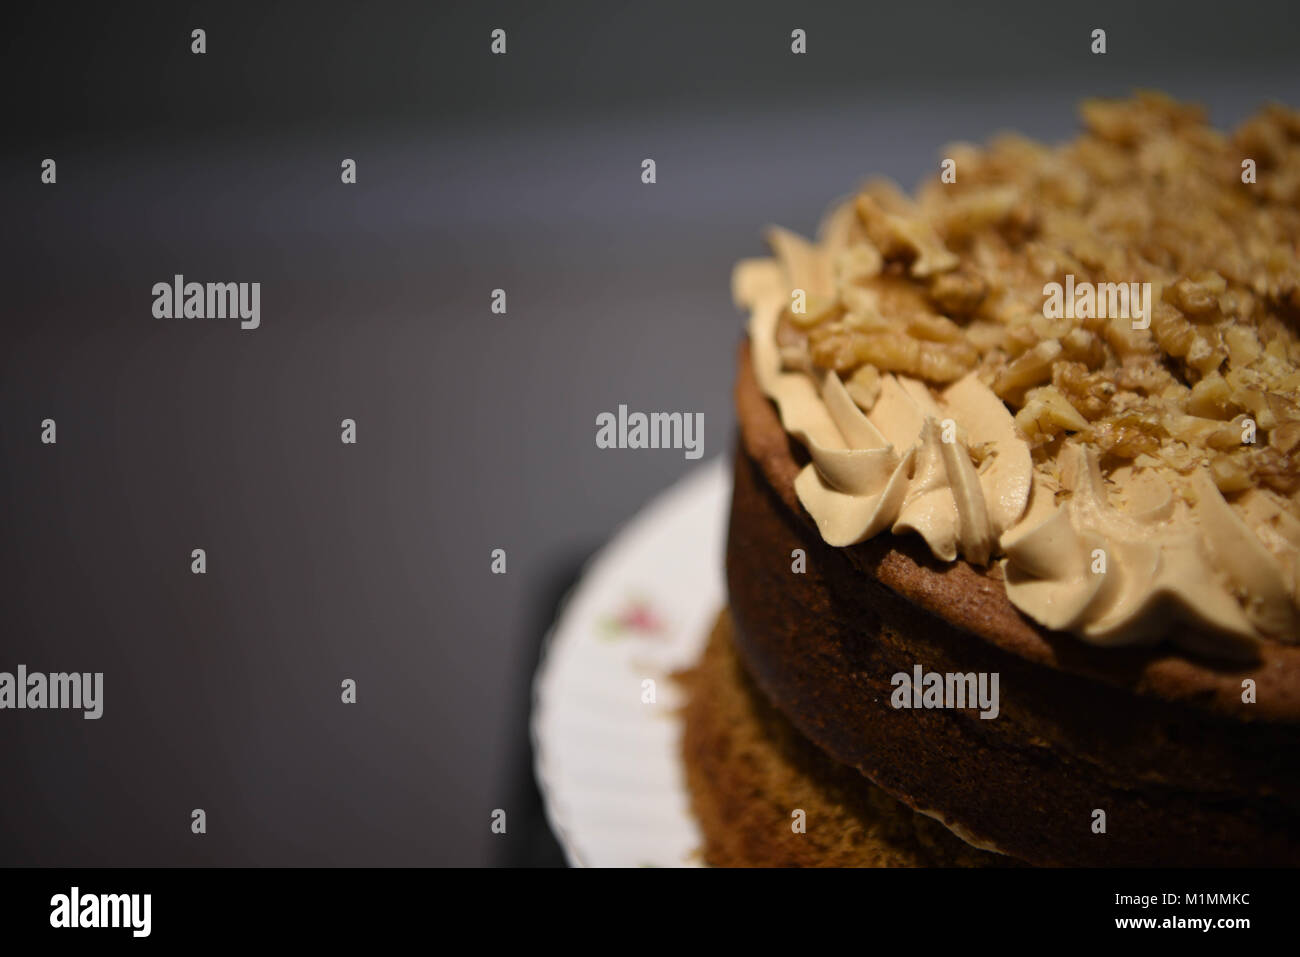 delicious homemade coffee cake with buttercream top and sprinkled with nuts and a dark background - Stock Image